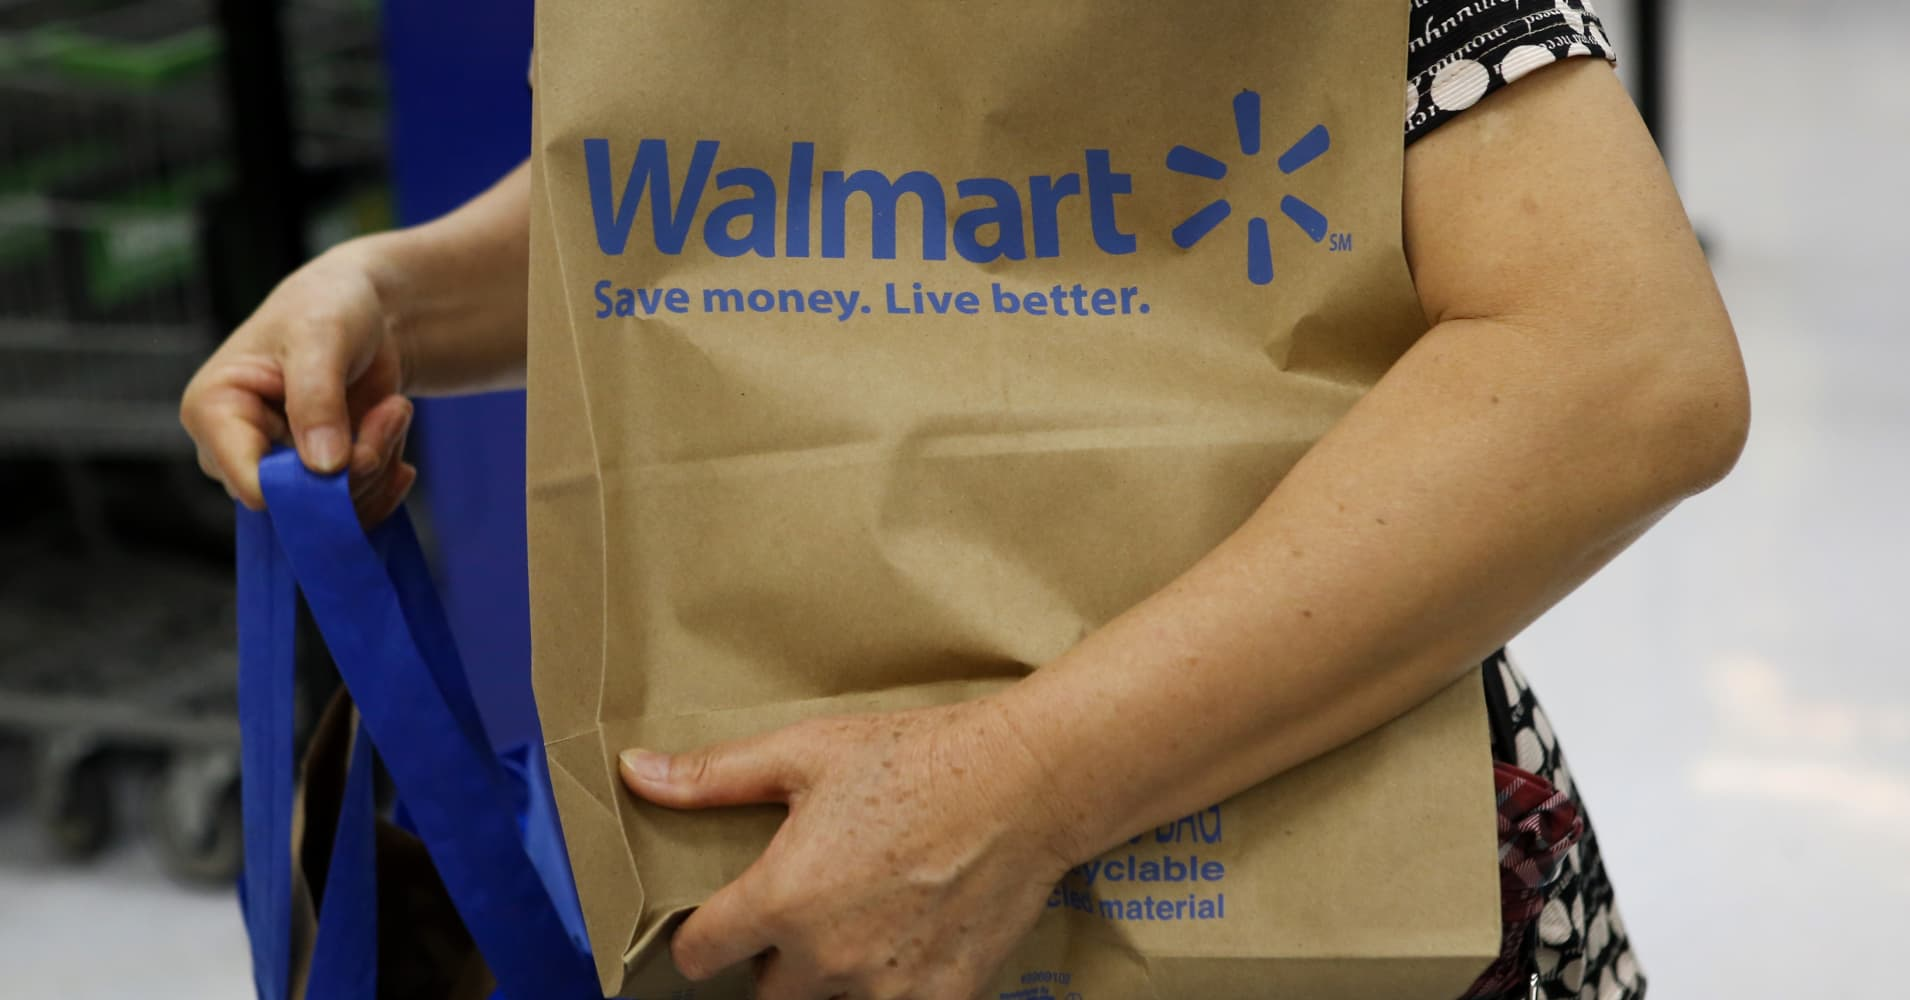 walmart reportedly halts controversial shoplifting punishment program